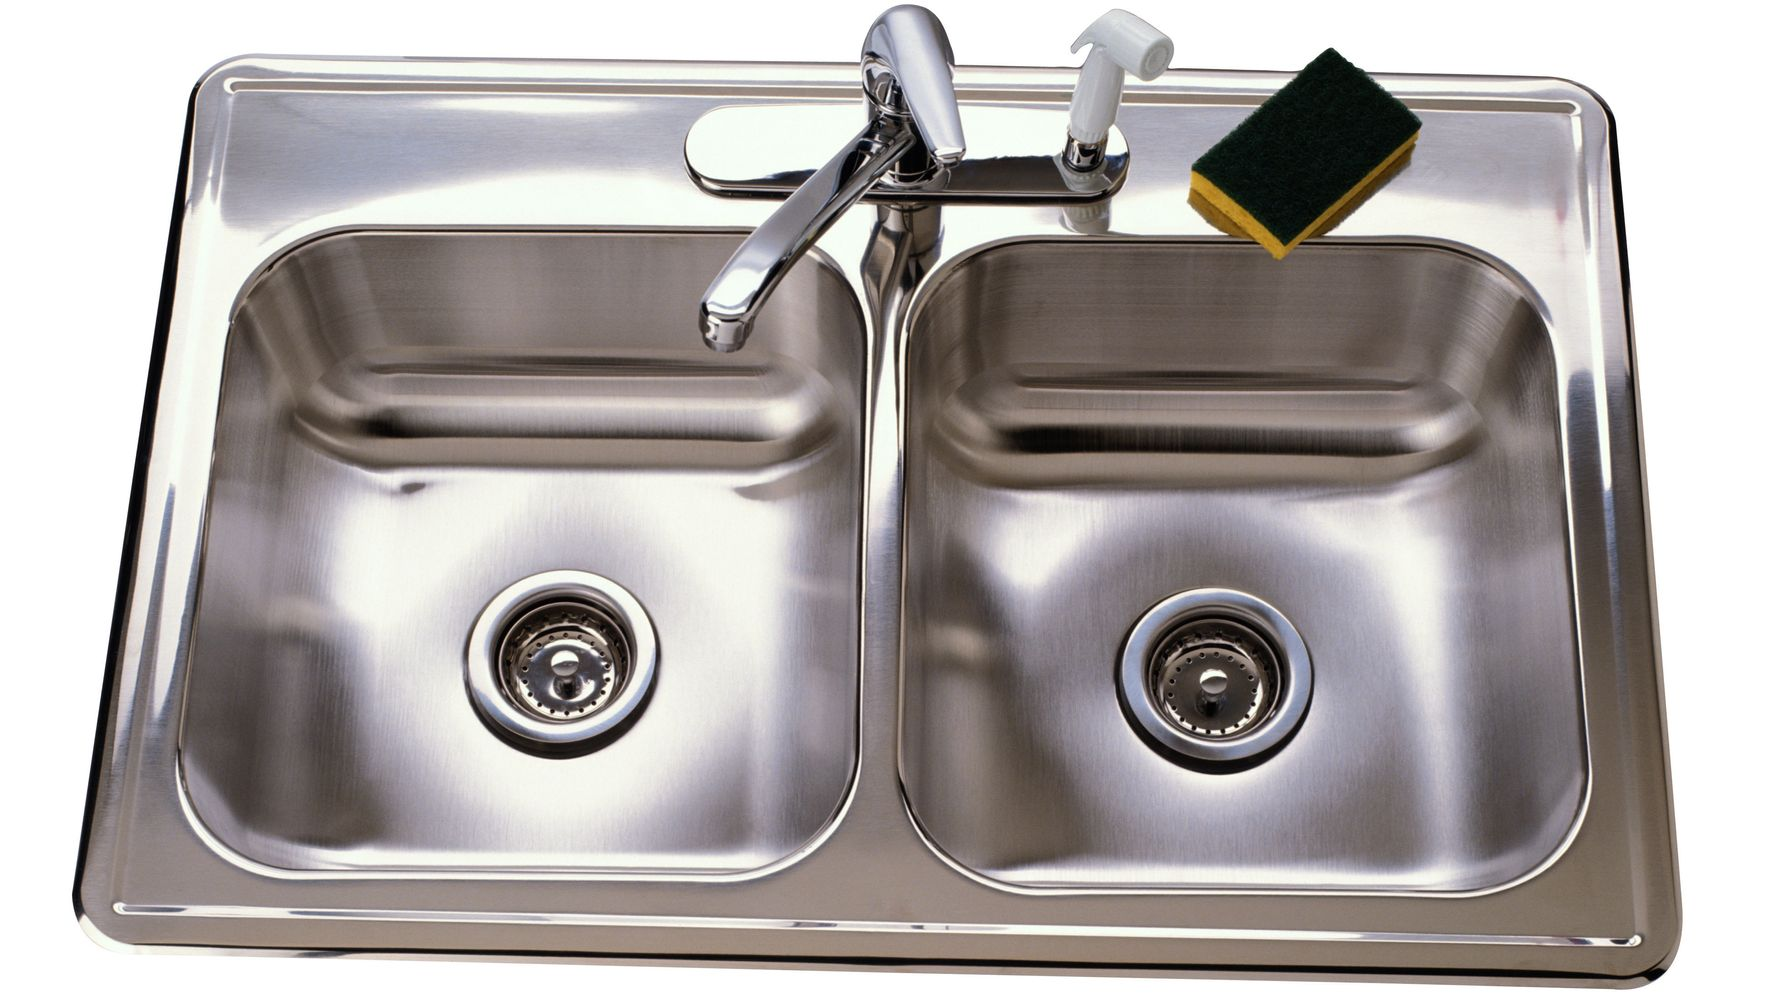 Pleasing The 5 Dirtiest Places In Your Kitchen Huffpost Complete Home Design Collection Papxelindsey Bellcom